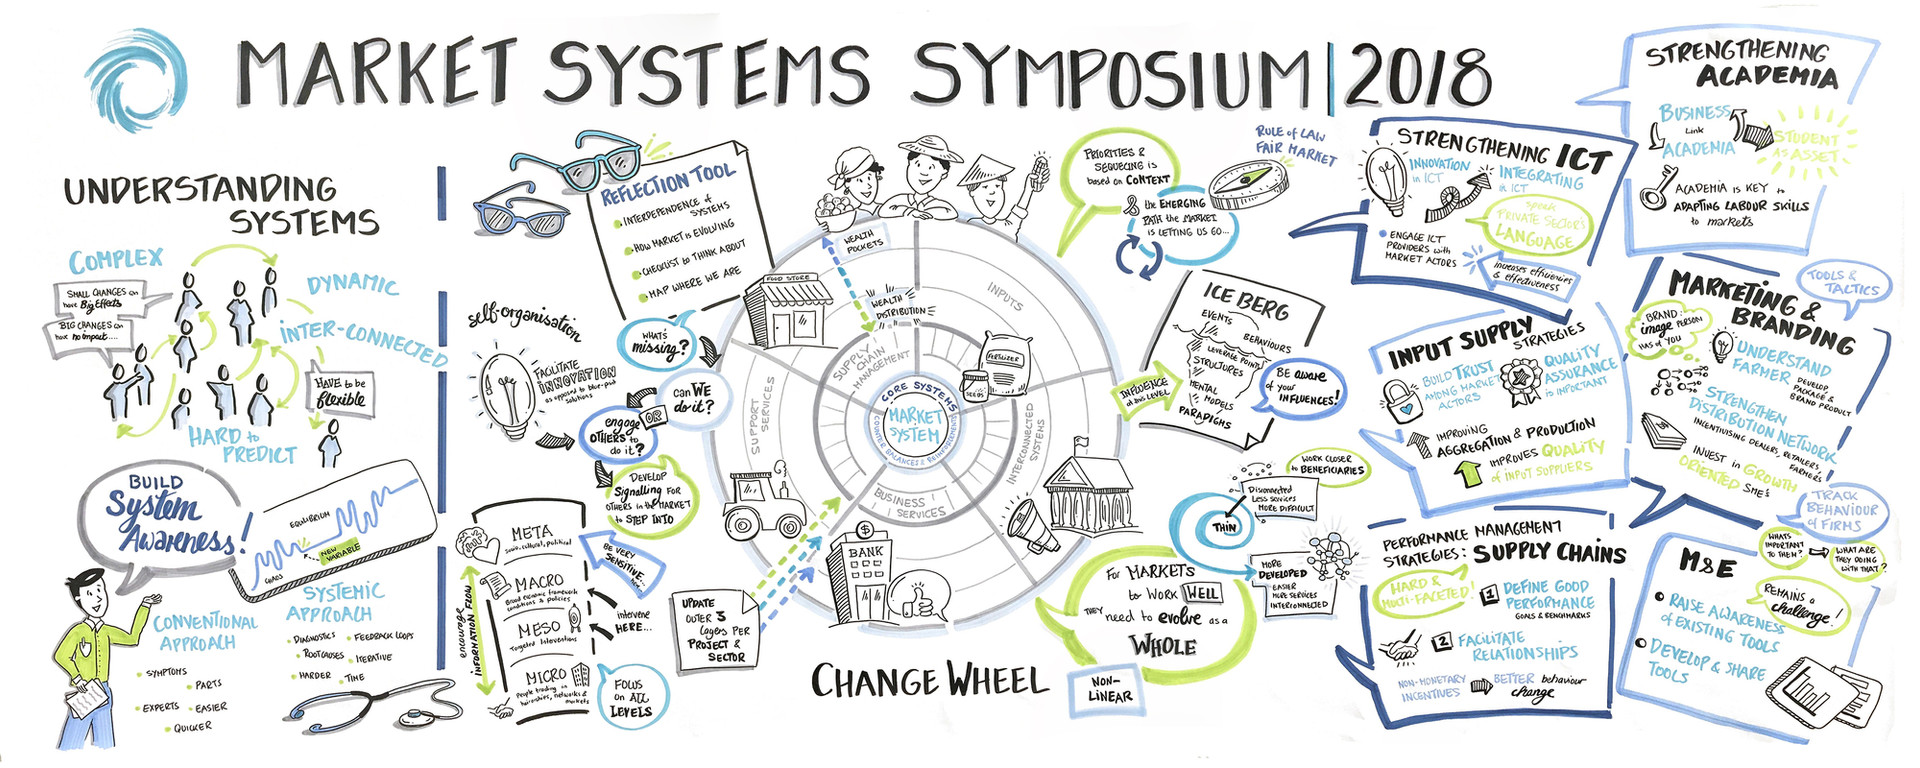 Market Systems Symposium - Day 1